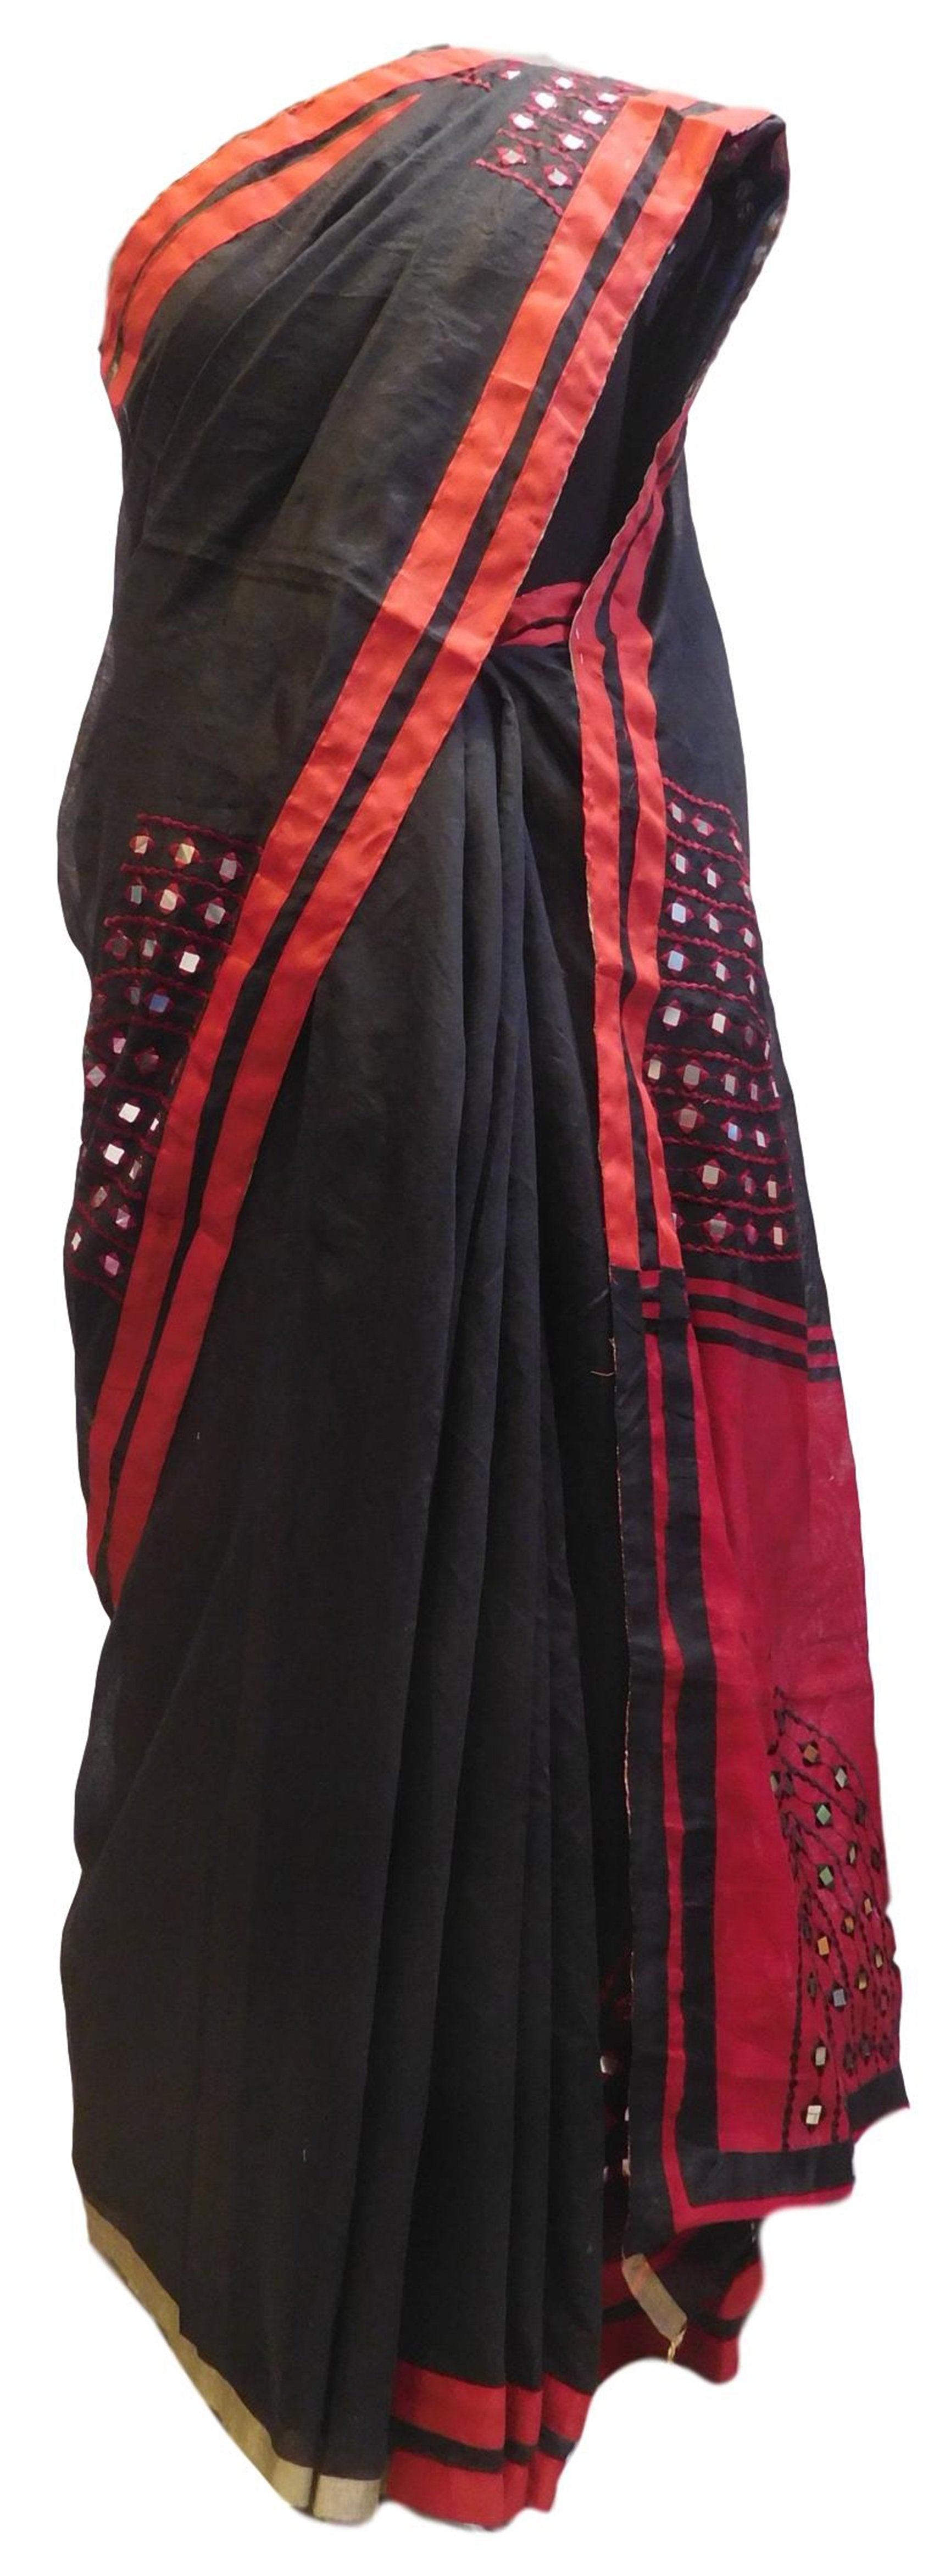 Red & Black Designer PartyWear Cotton (Chanderi) Thread Mirror Work Boutique Style Saree Sari E042